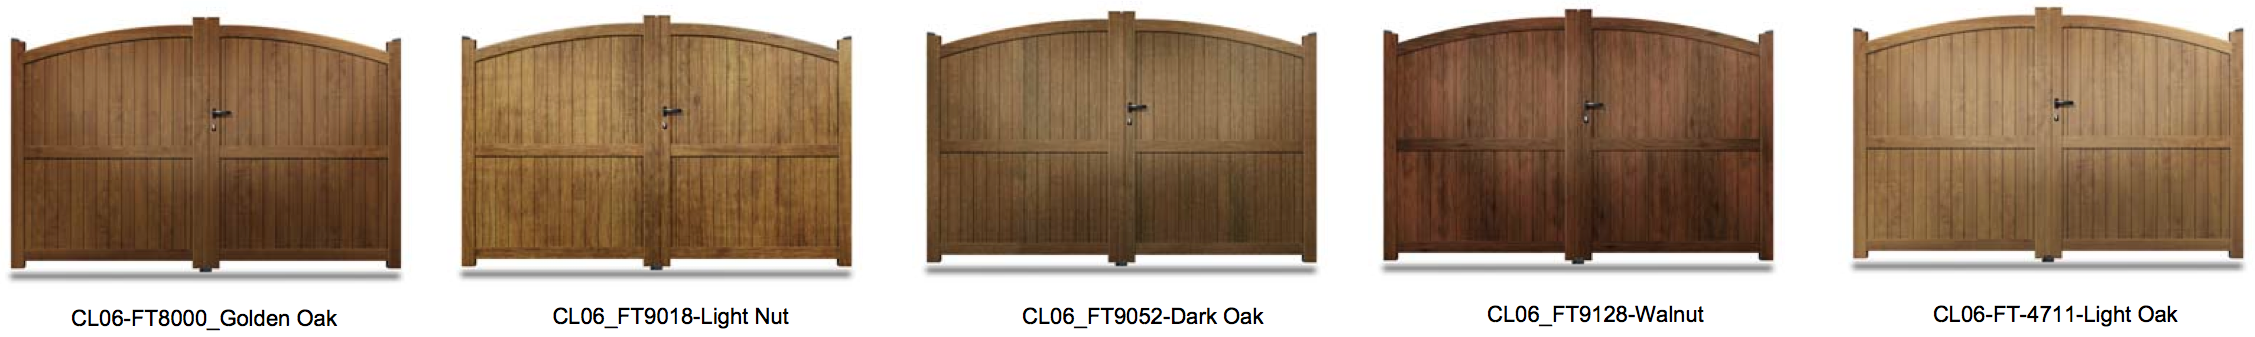 CL06 Wood Effect Aluminium Gate